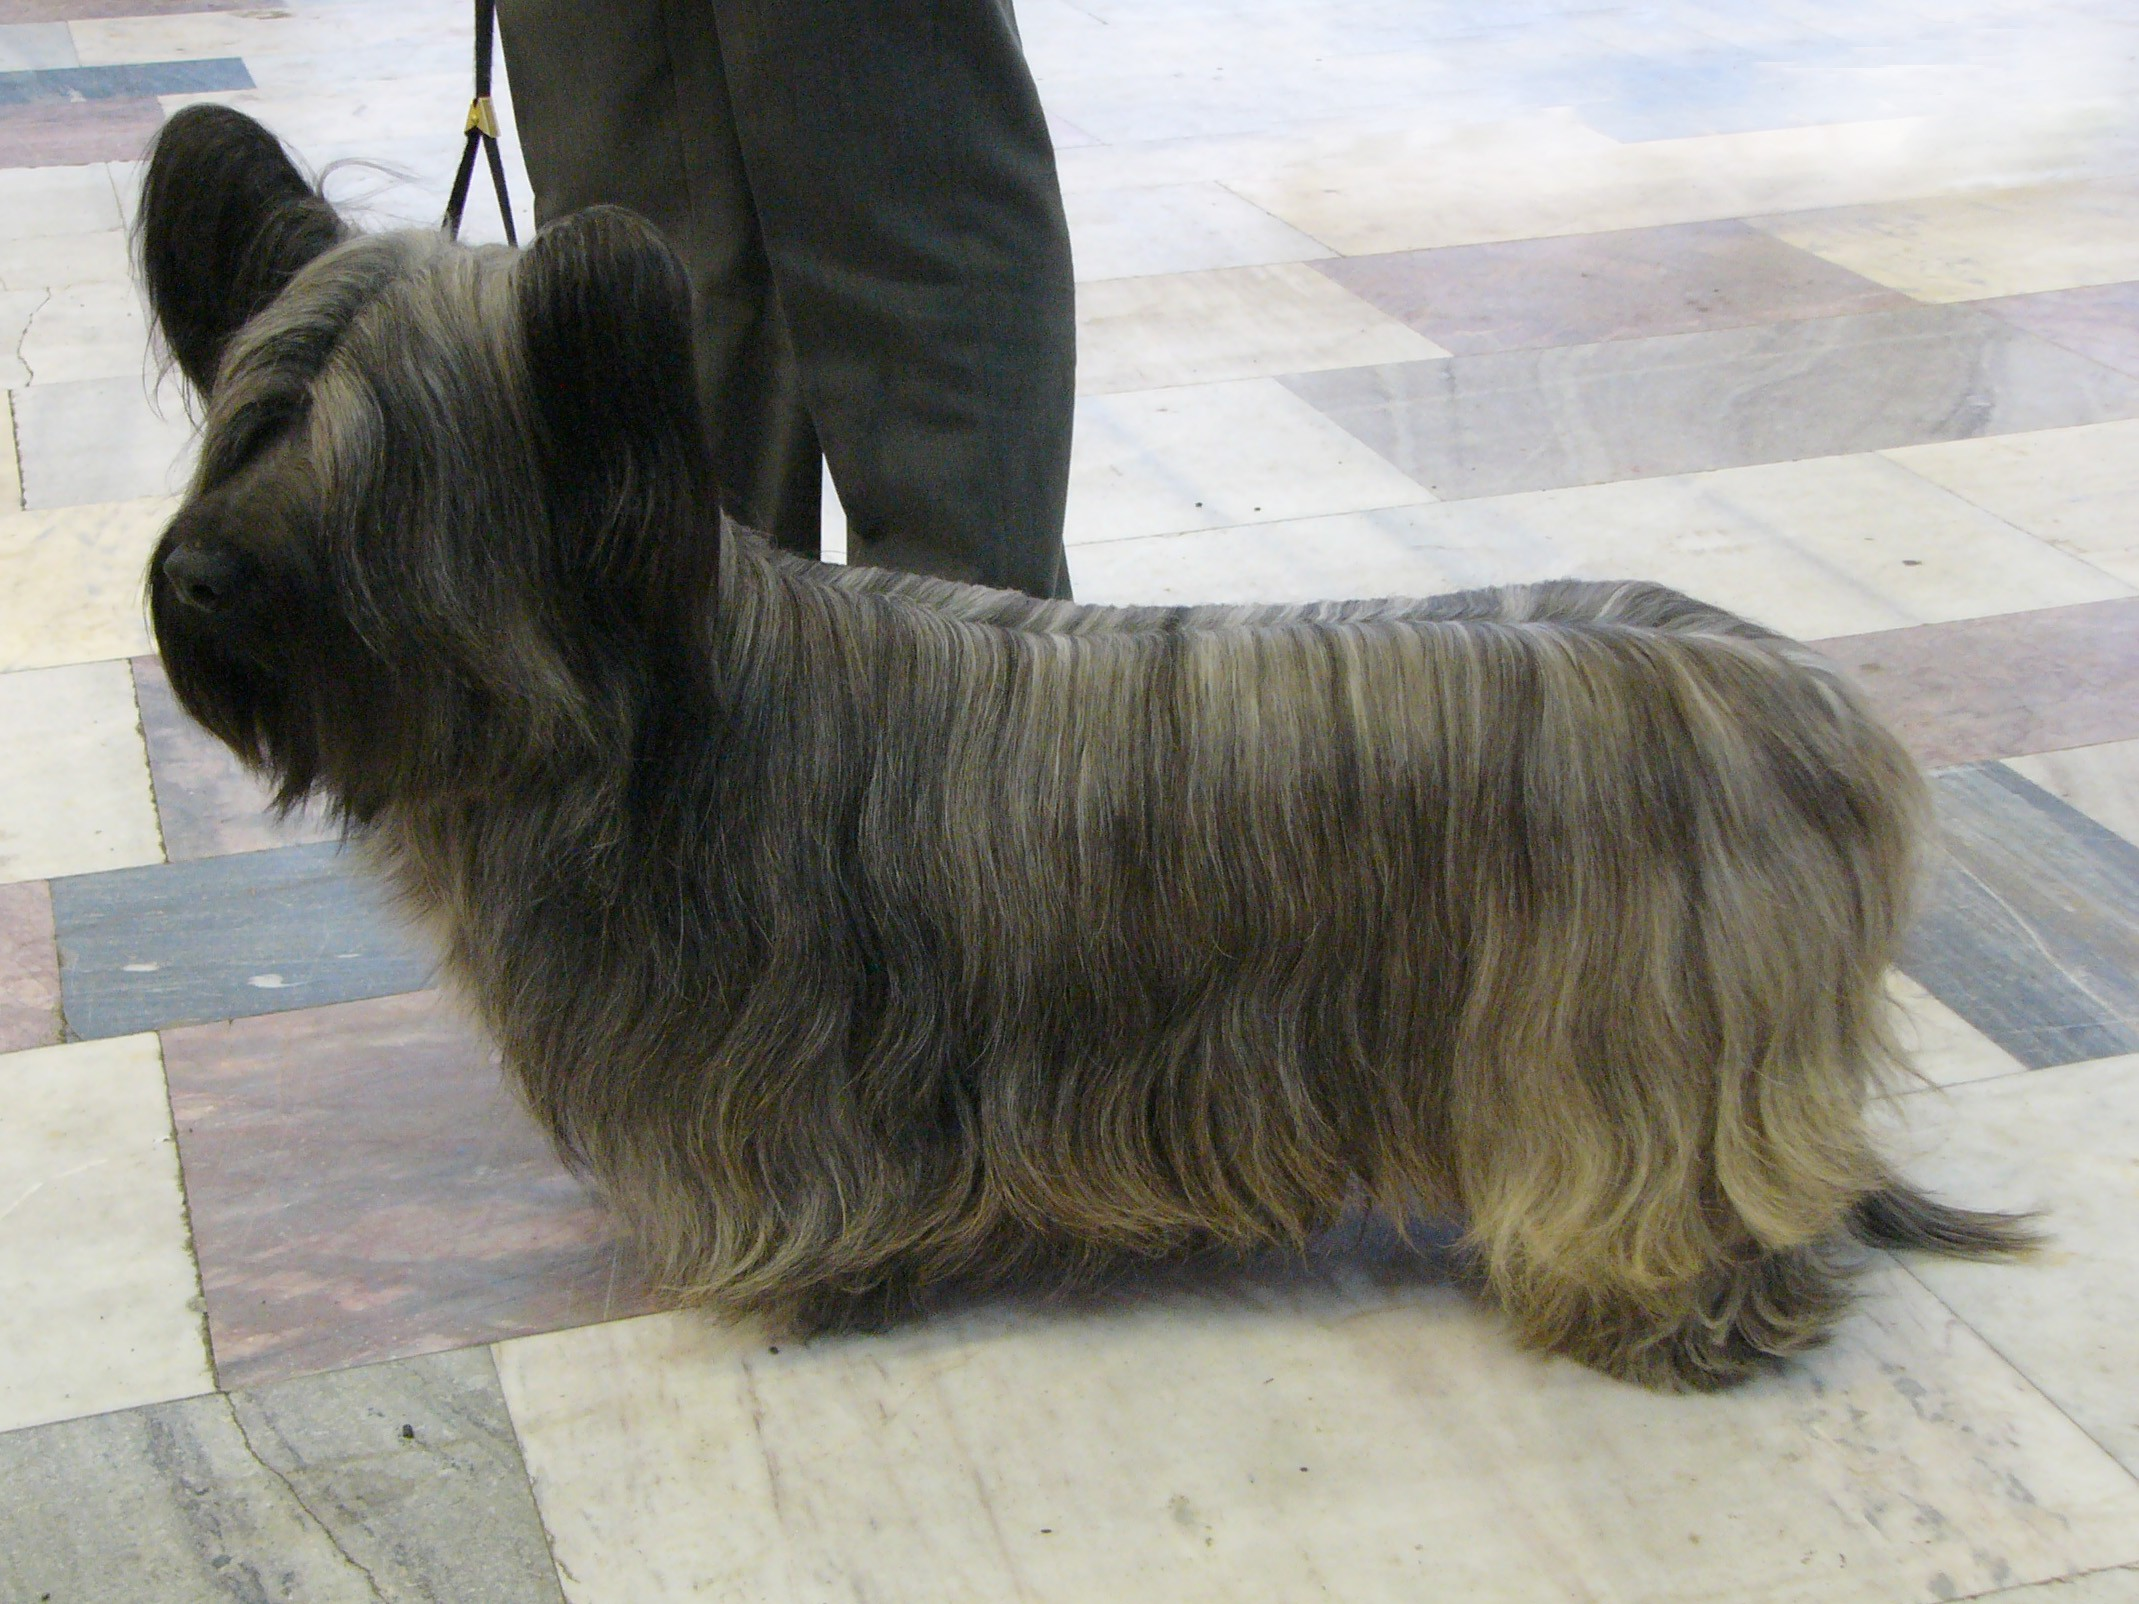 O Skye Terrier (Foto: wikimedia commons)